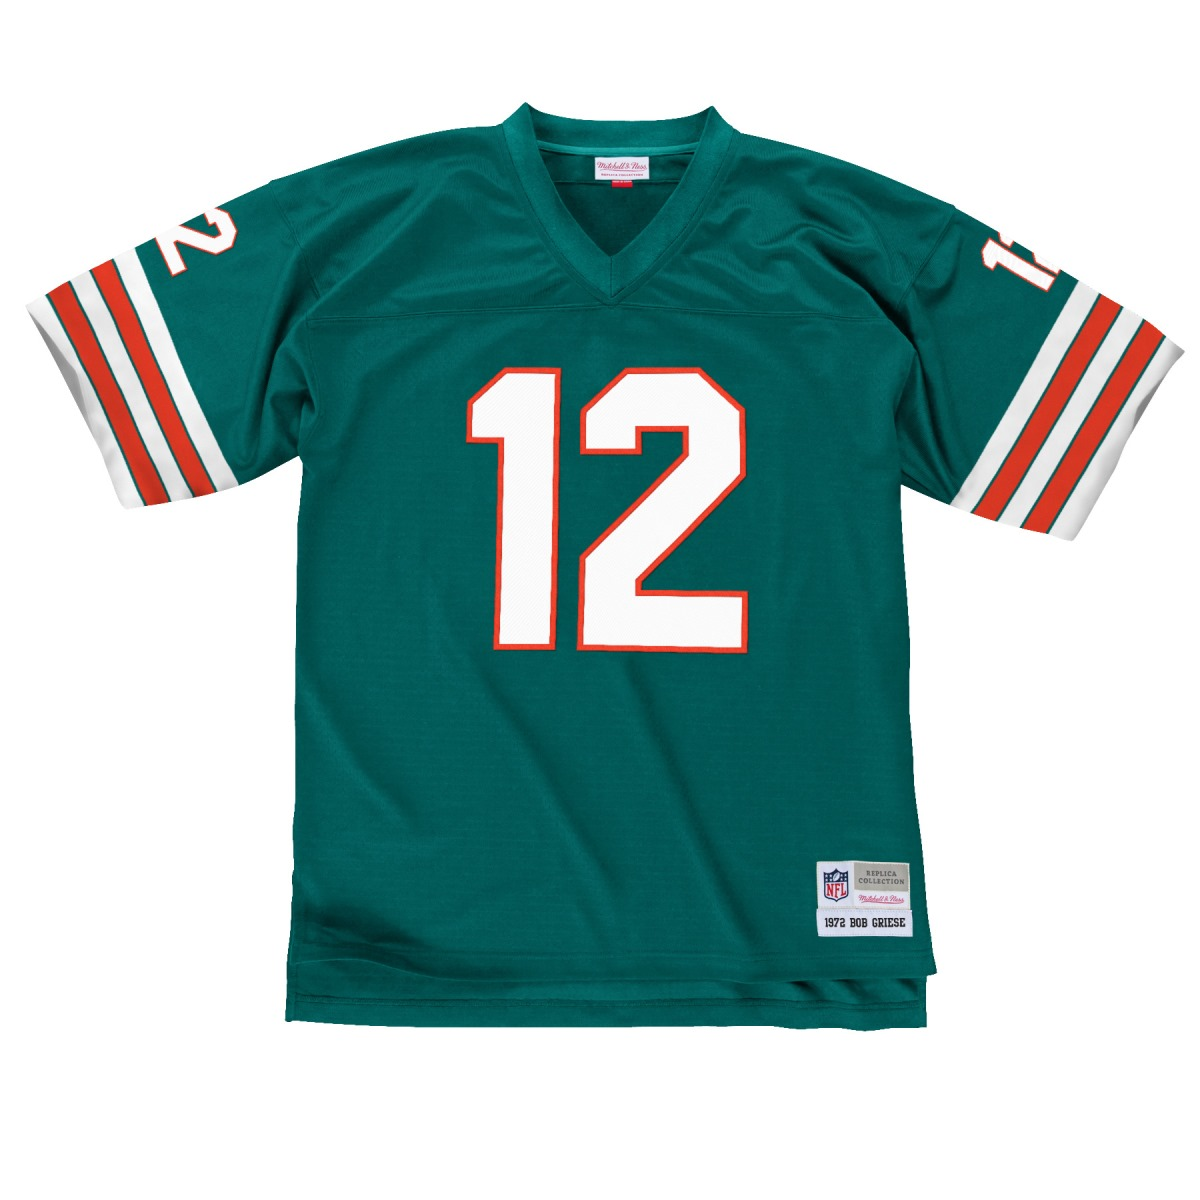 Bob Griese Miami Dolphins Men's NFL Mitchell & Ness Premier Aqua Jersey